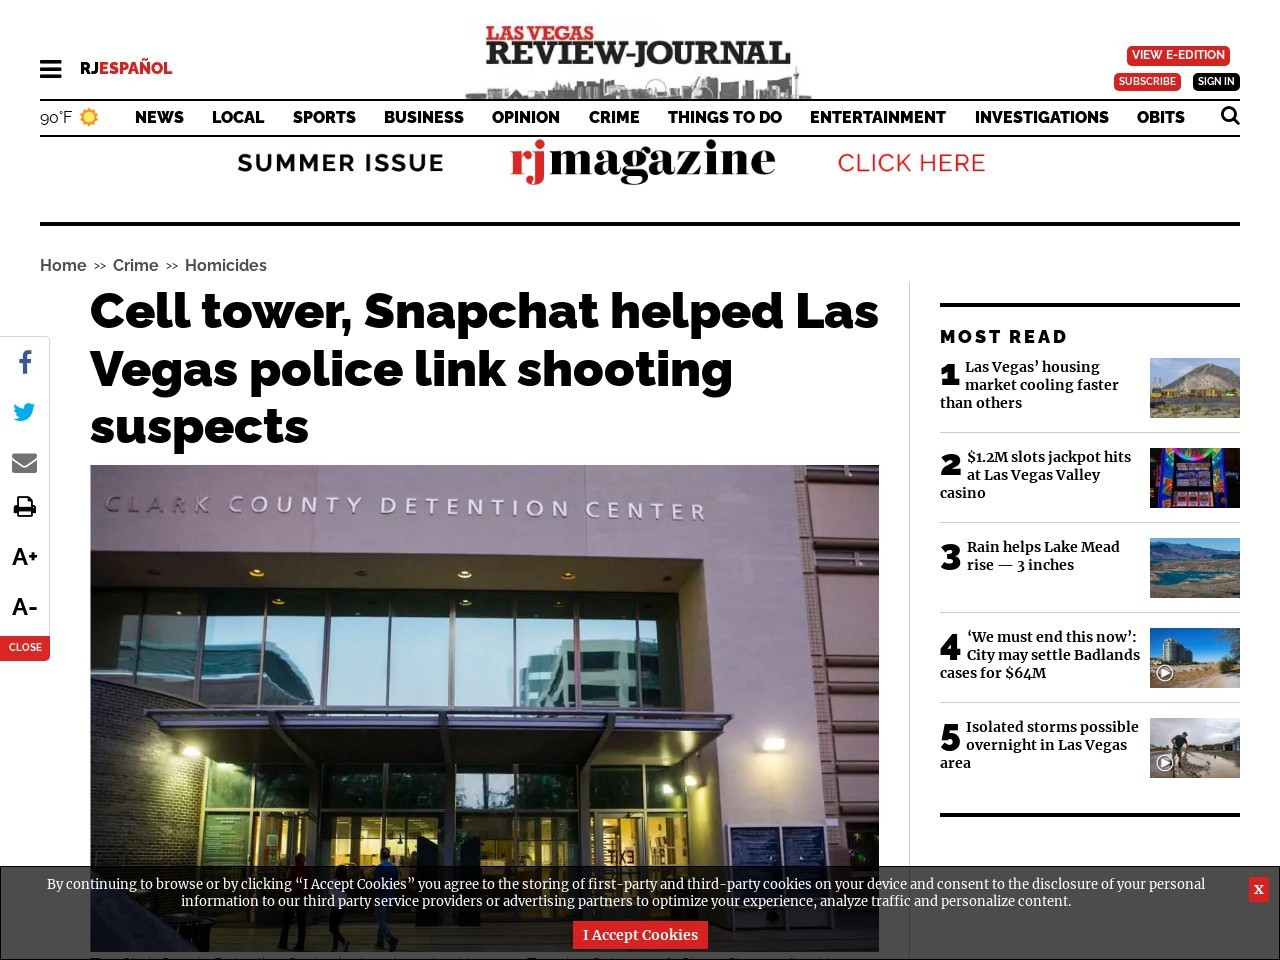 Cell tower, Snapchat helped Las Vegas police link shooting suspects